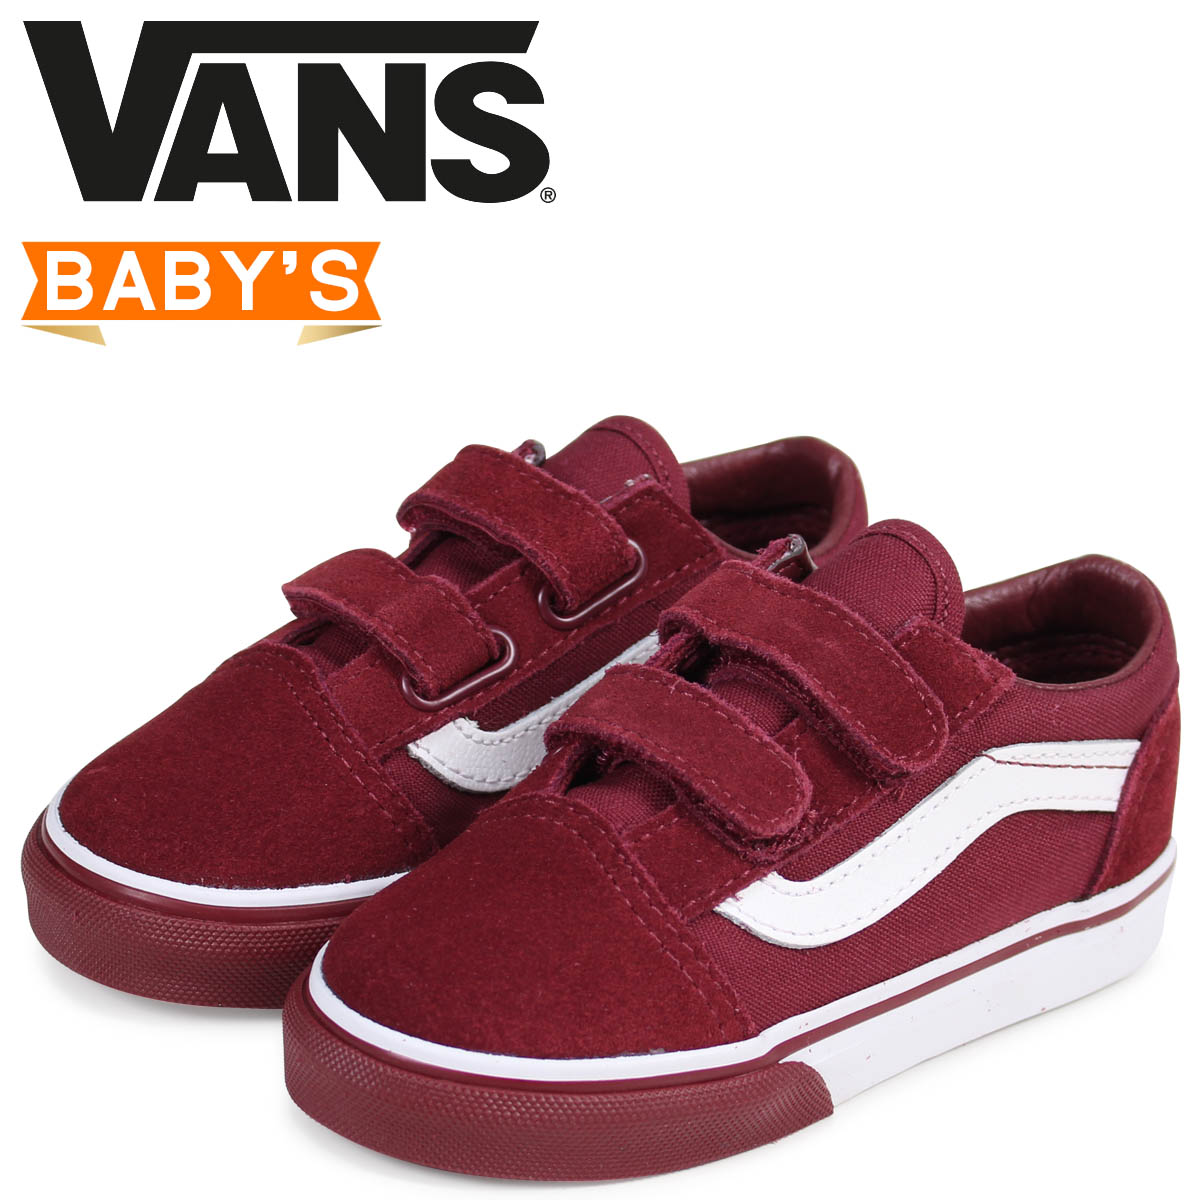 4ae86ee714b3 dark red vans